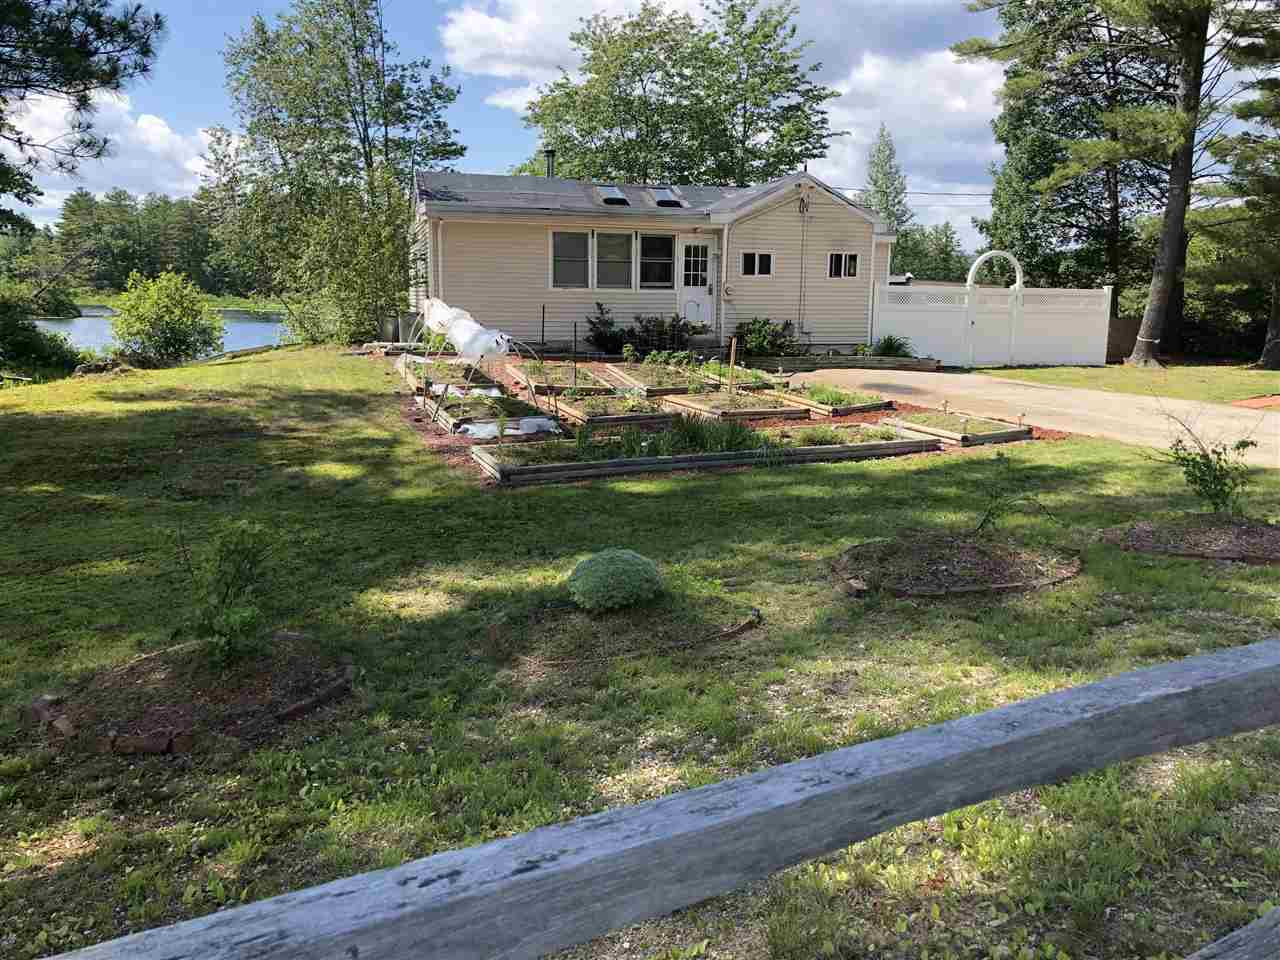 NEW DURHAM NH Home for sale $229,900